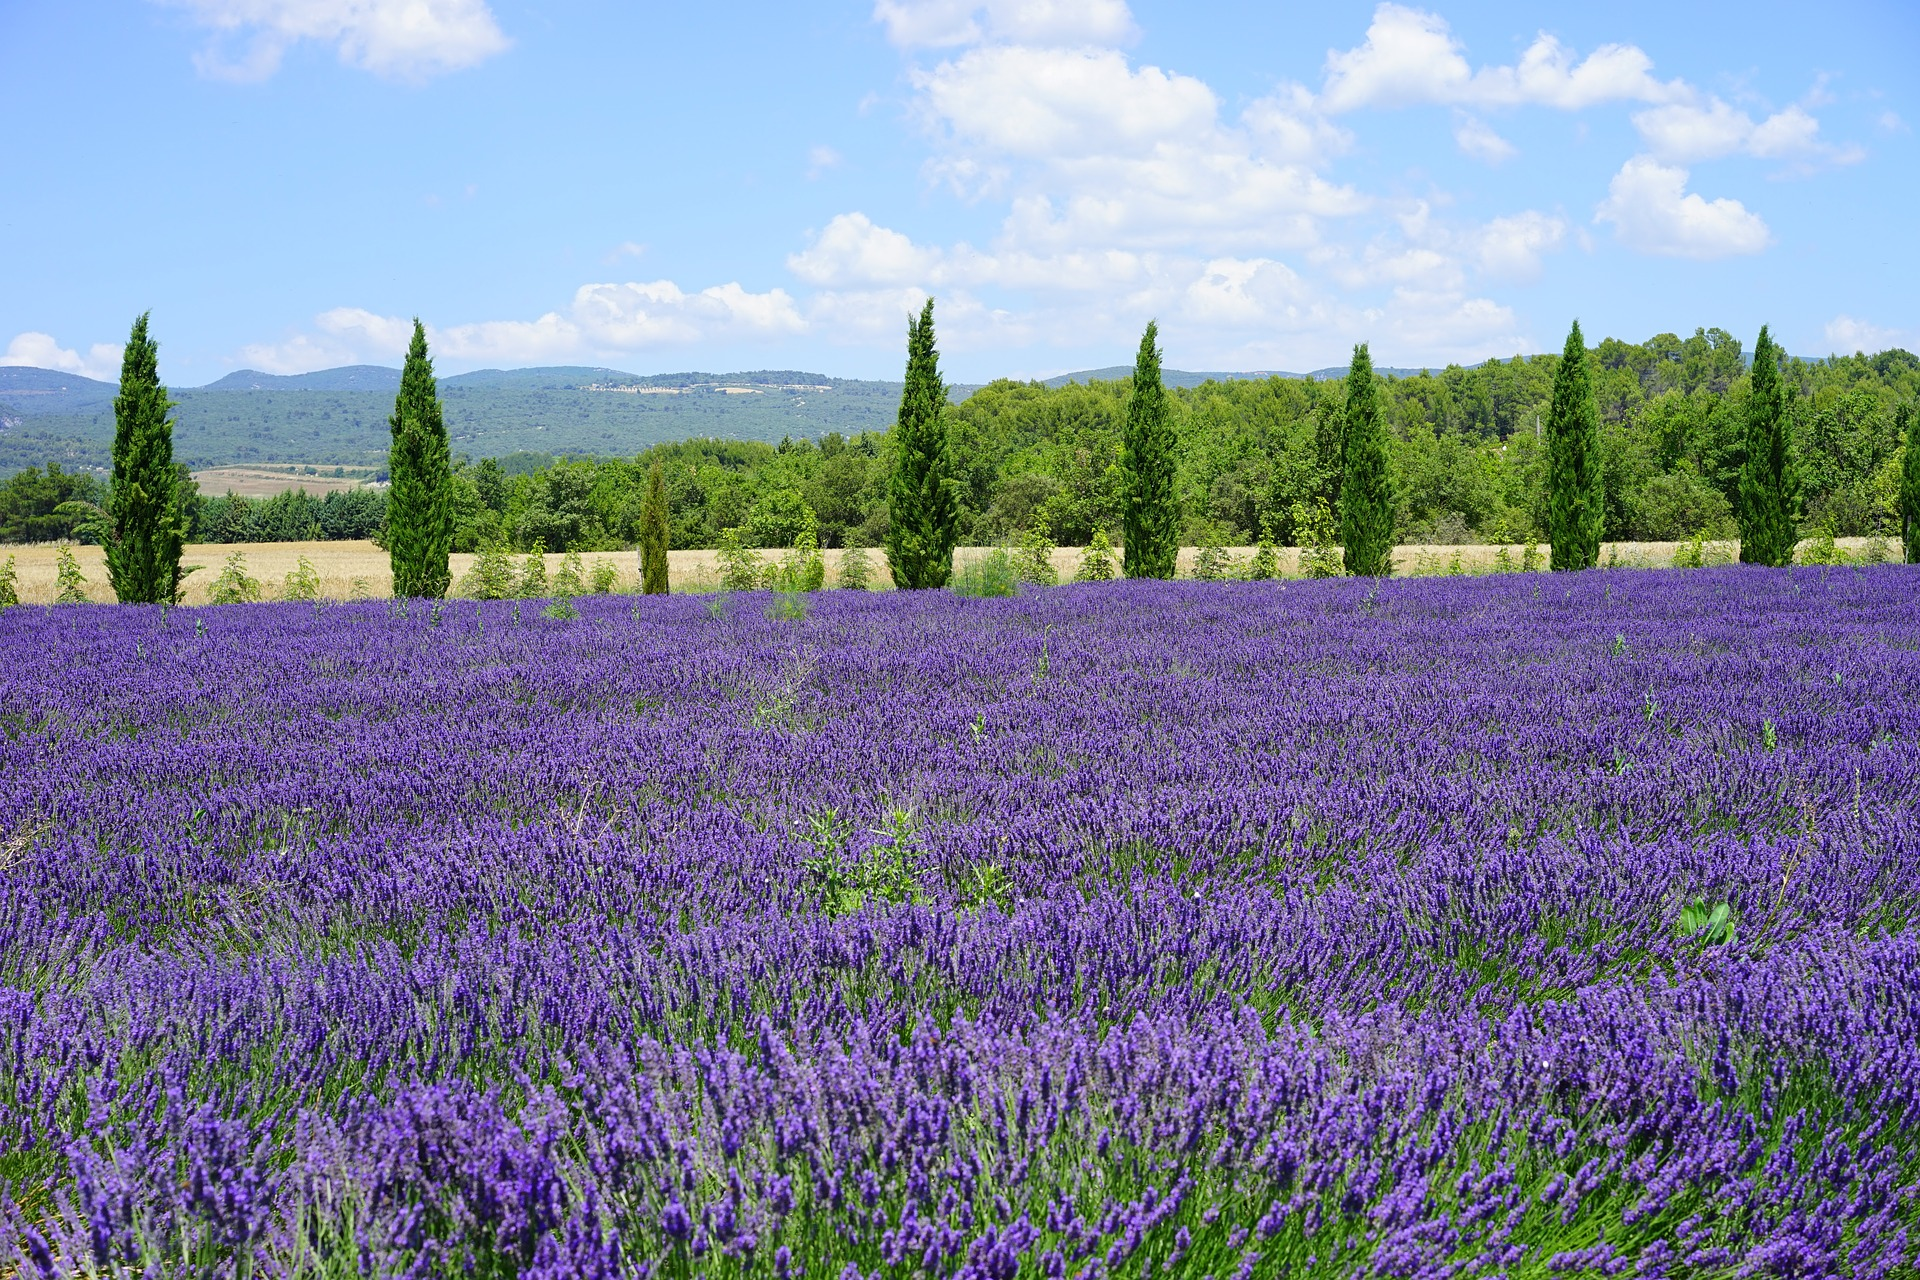 Lavender fields of Provence - a bucket list for many, can be enjoyed on this ebike tour.